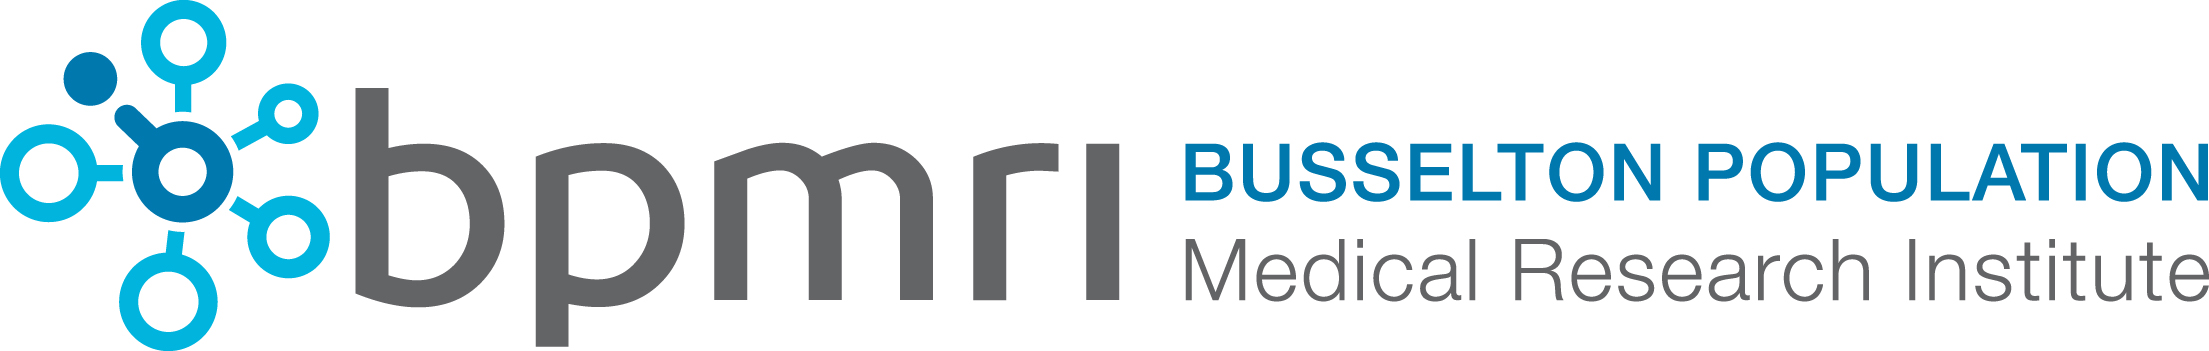 Busselton Population Medical Research Institute Logo